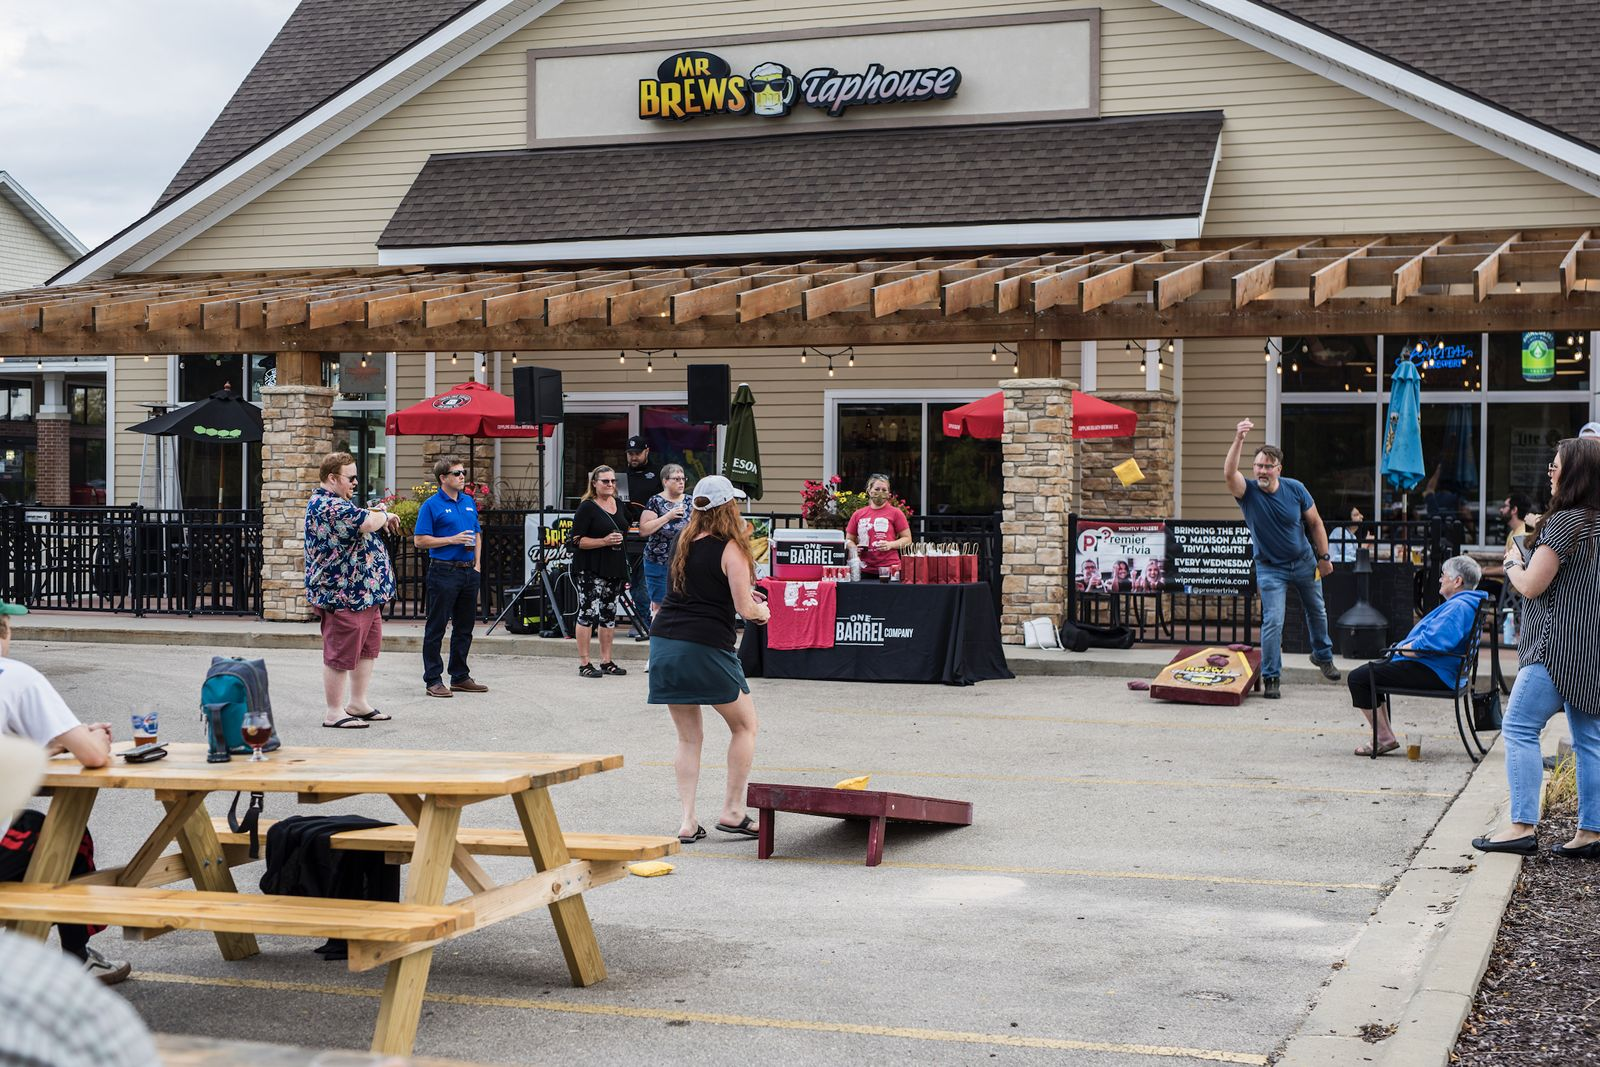 Mr Brews Taphouse Closes Out Record-Breaking Summer of Sales